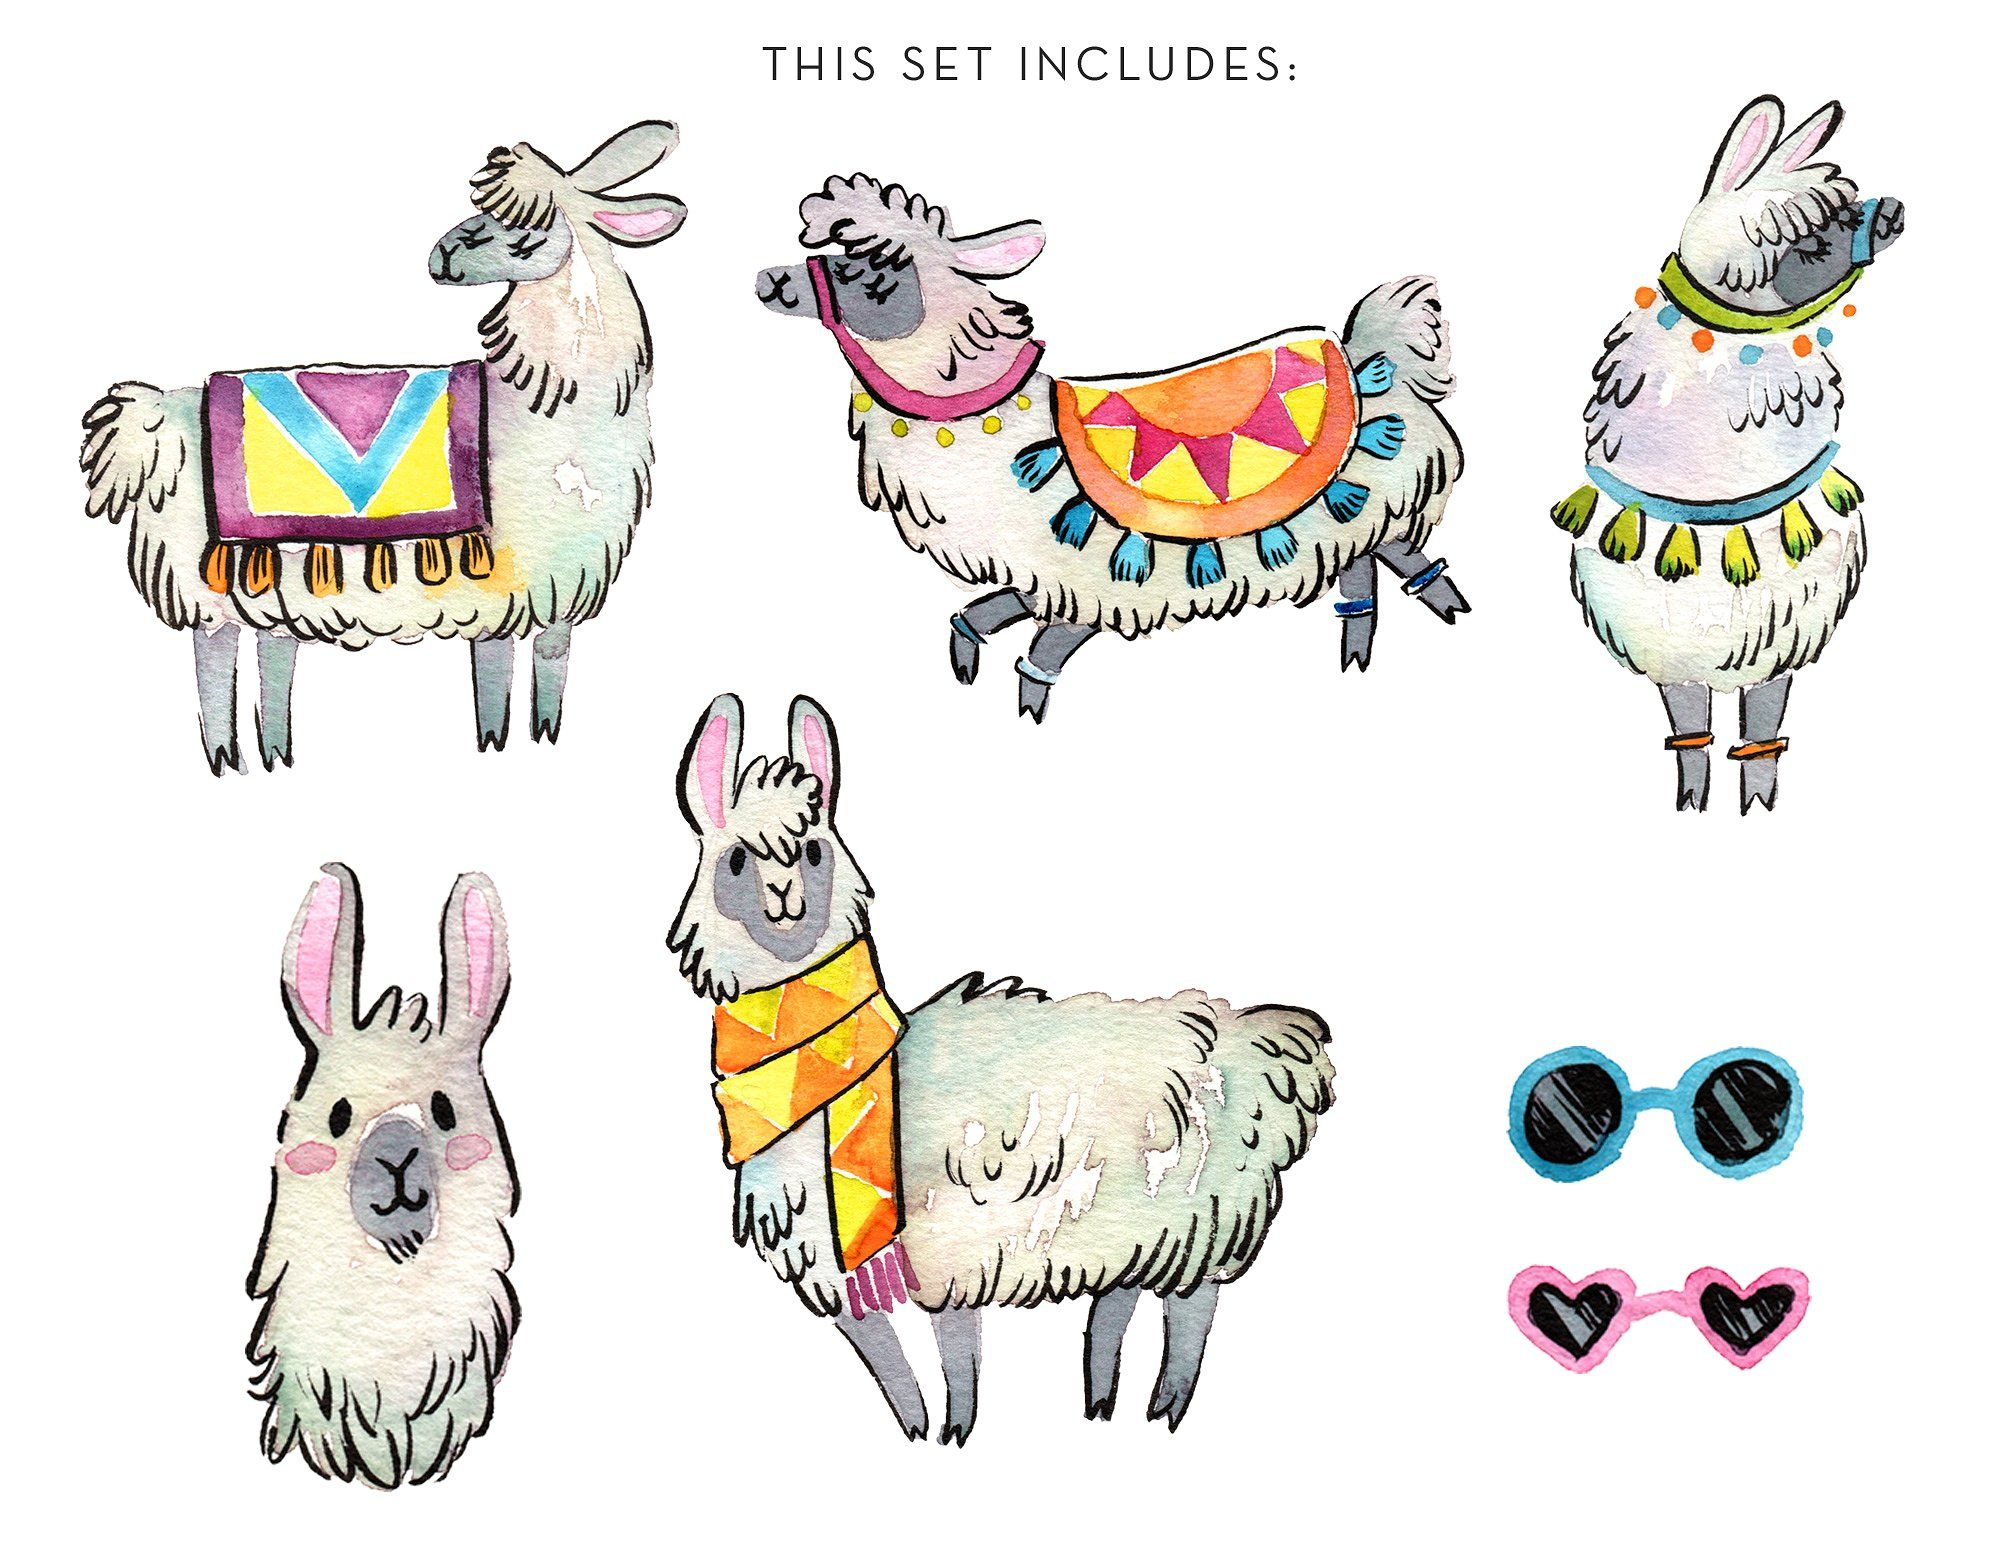 Llama clipart llama peru. Party watercolor set illustrations